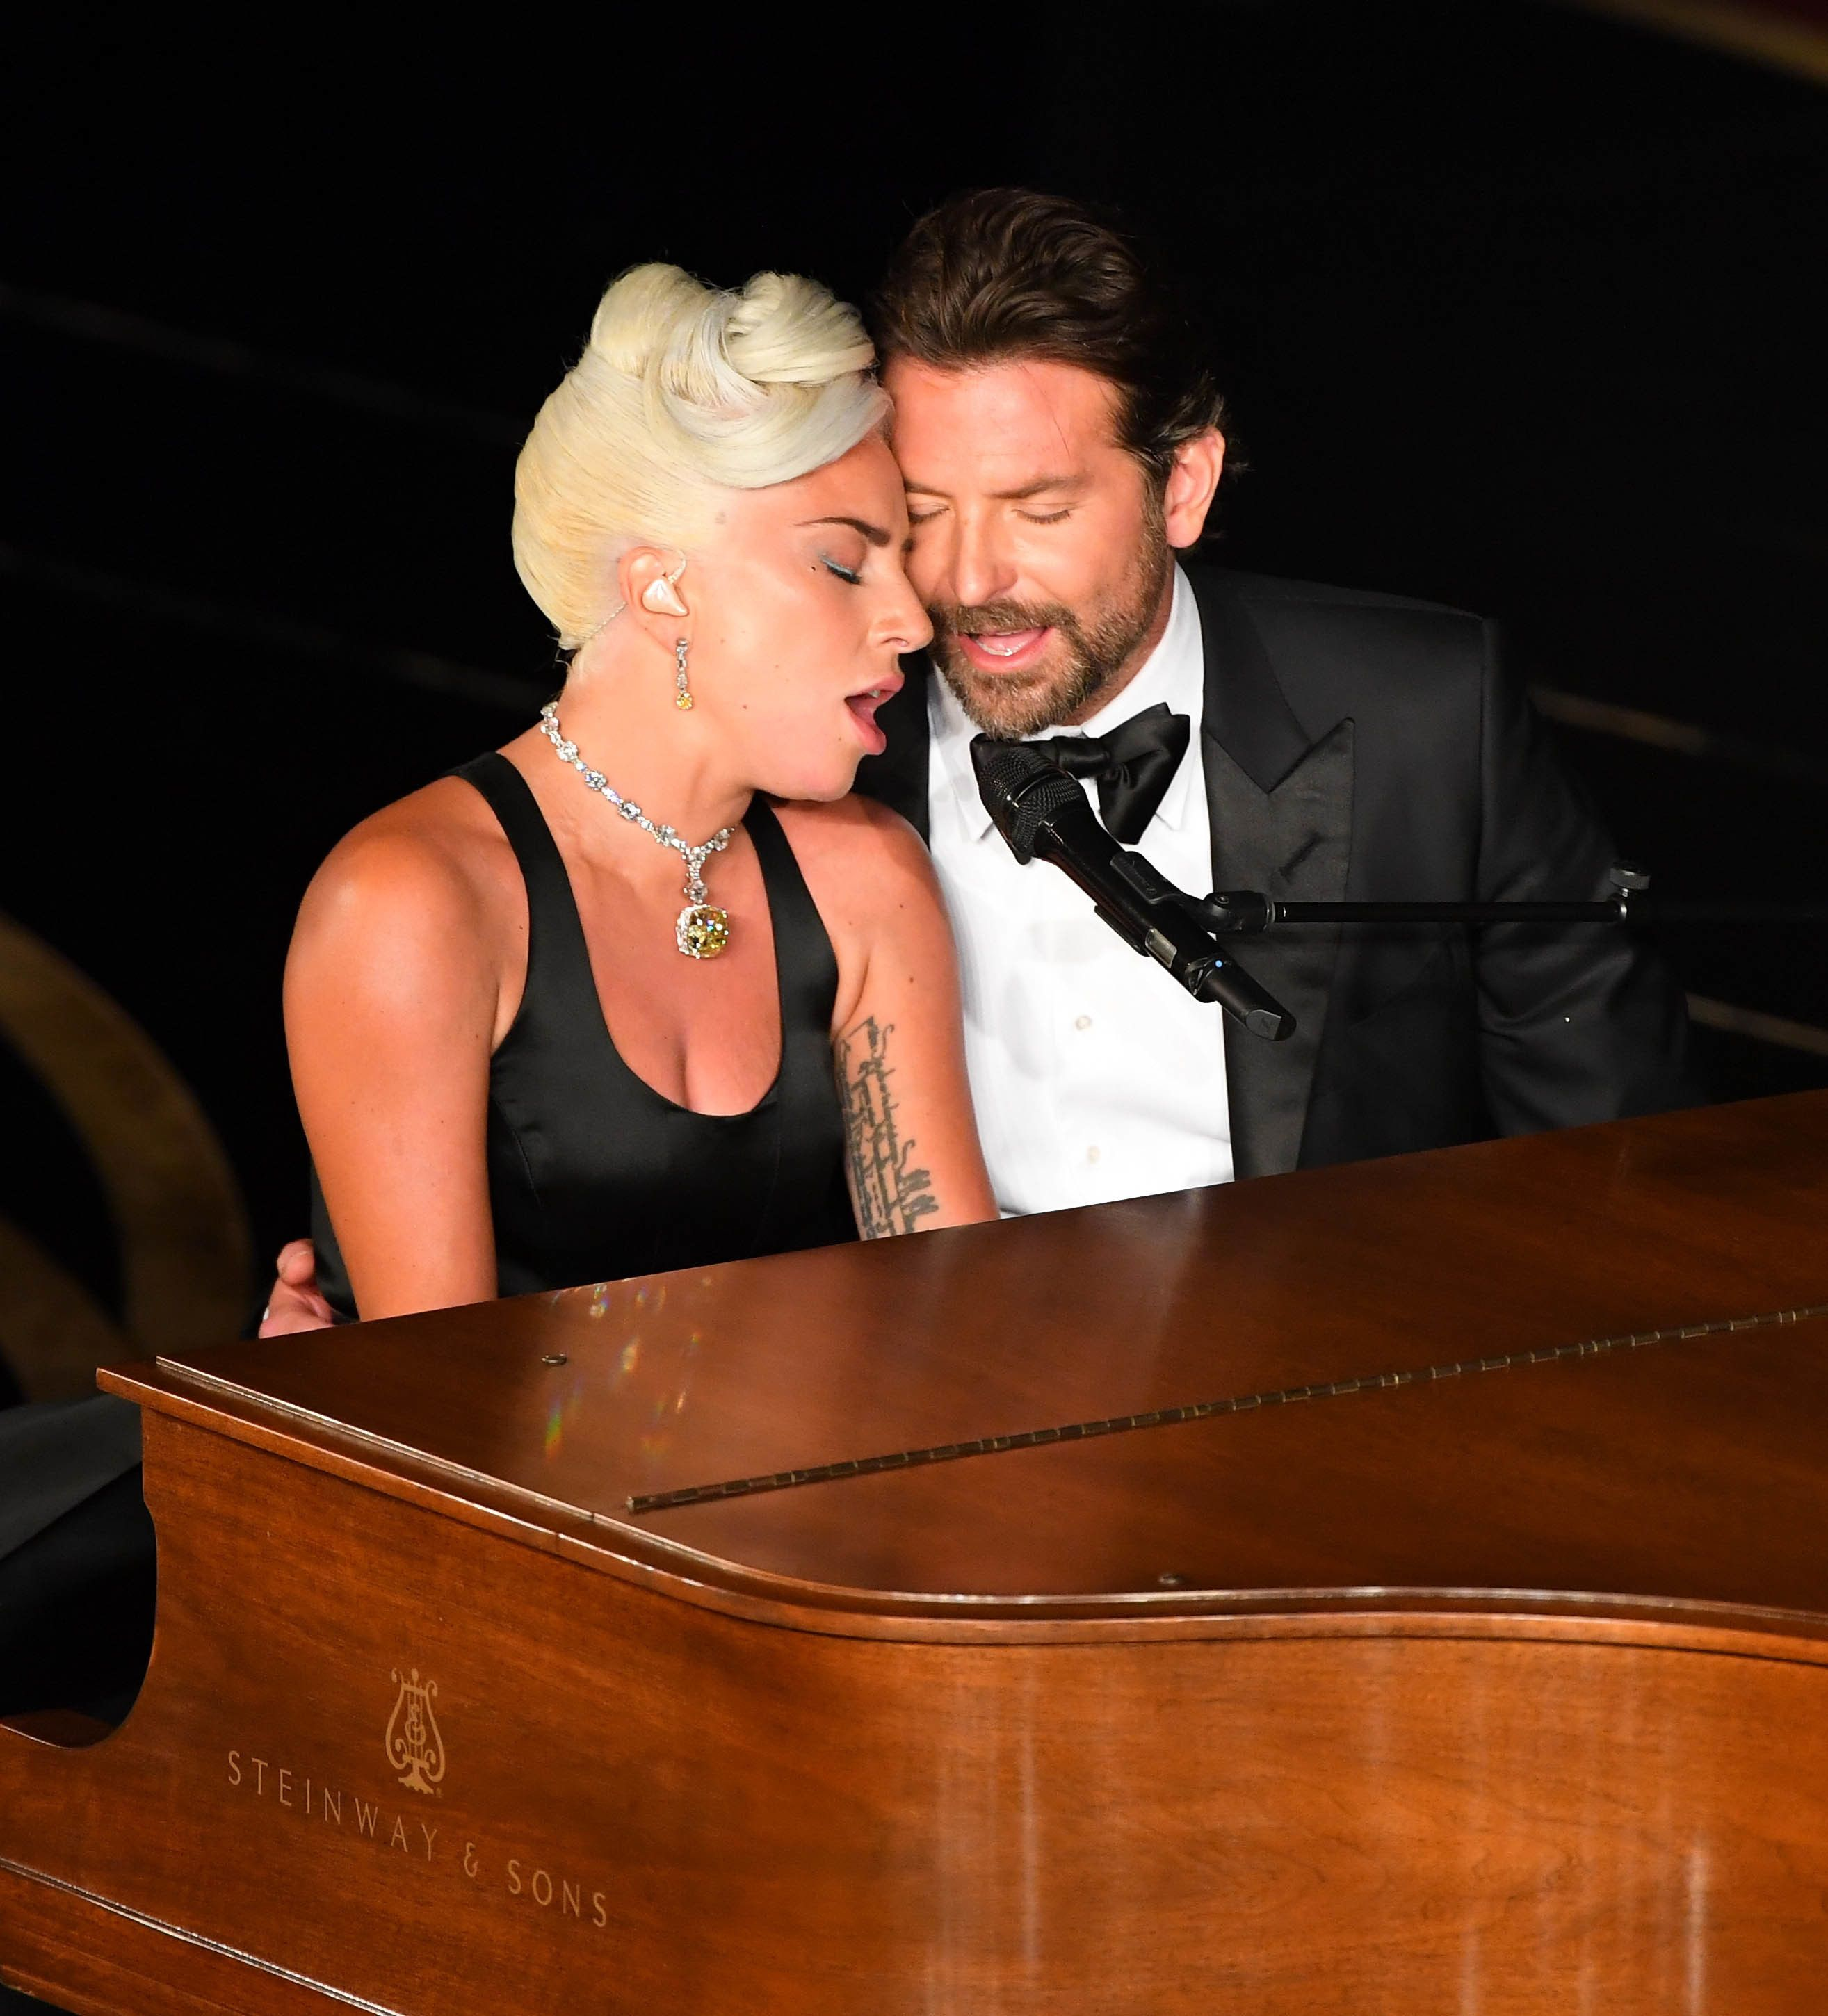 Lady Gaga and Madonna bury the hatchet at Oscars afterparty